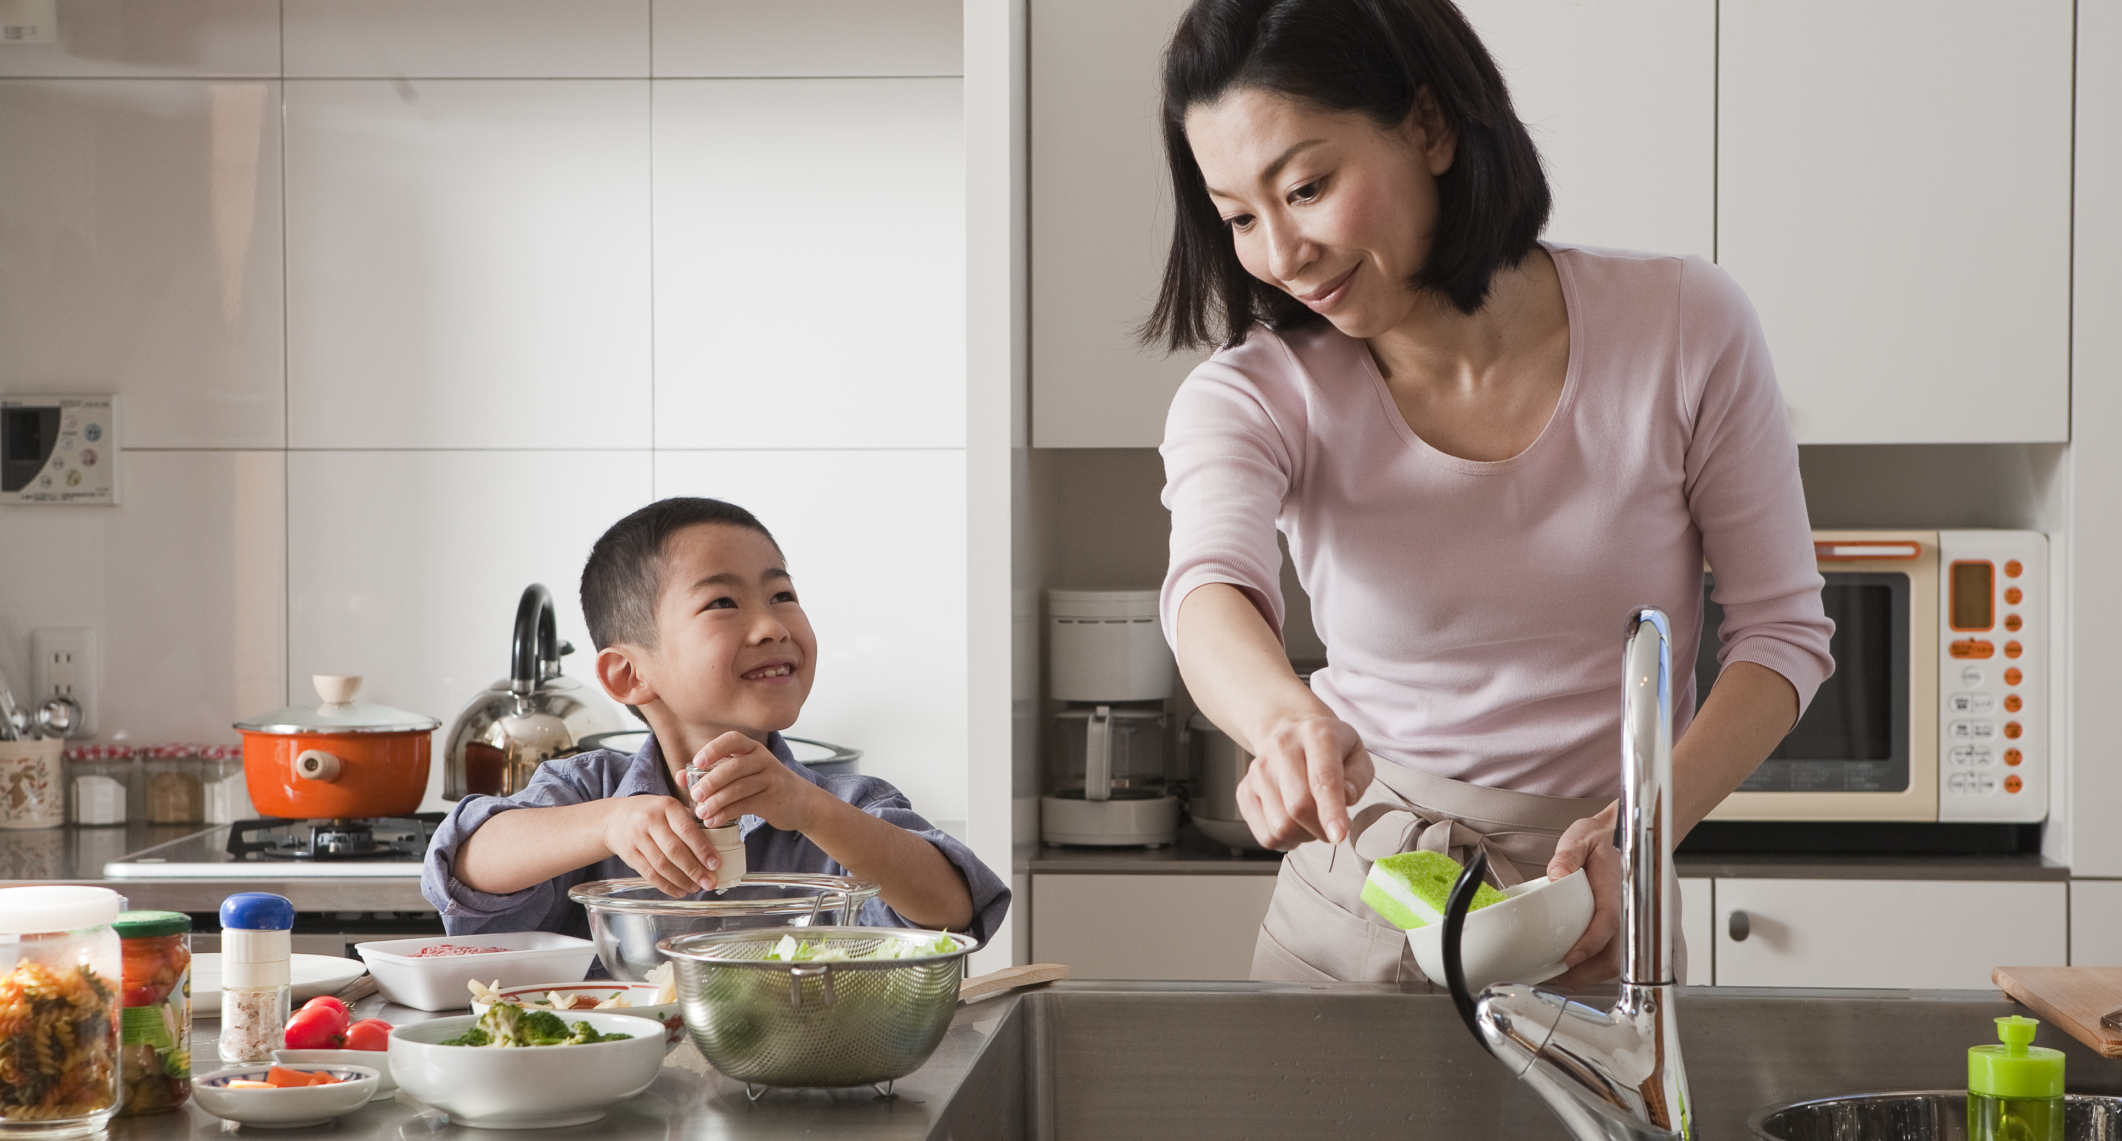 Benefits of children in the kitchen